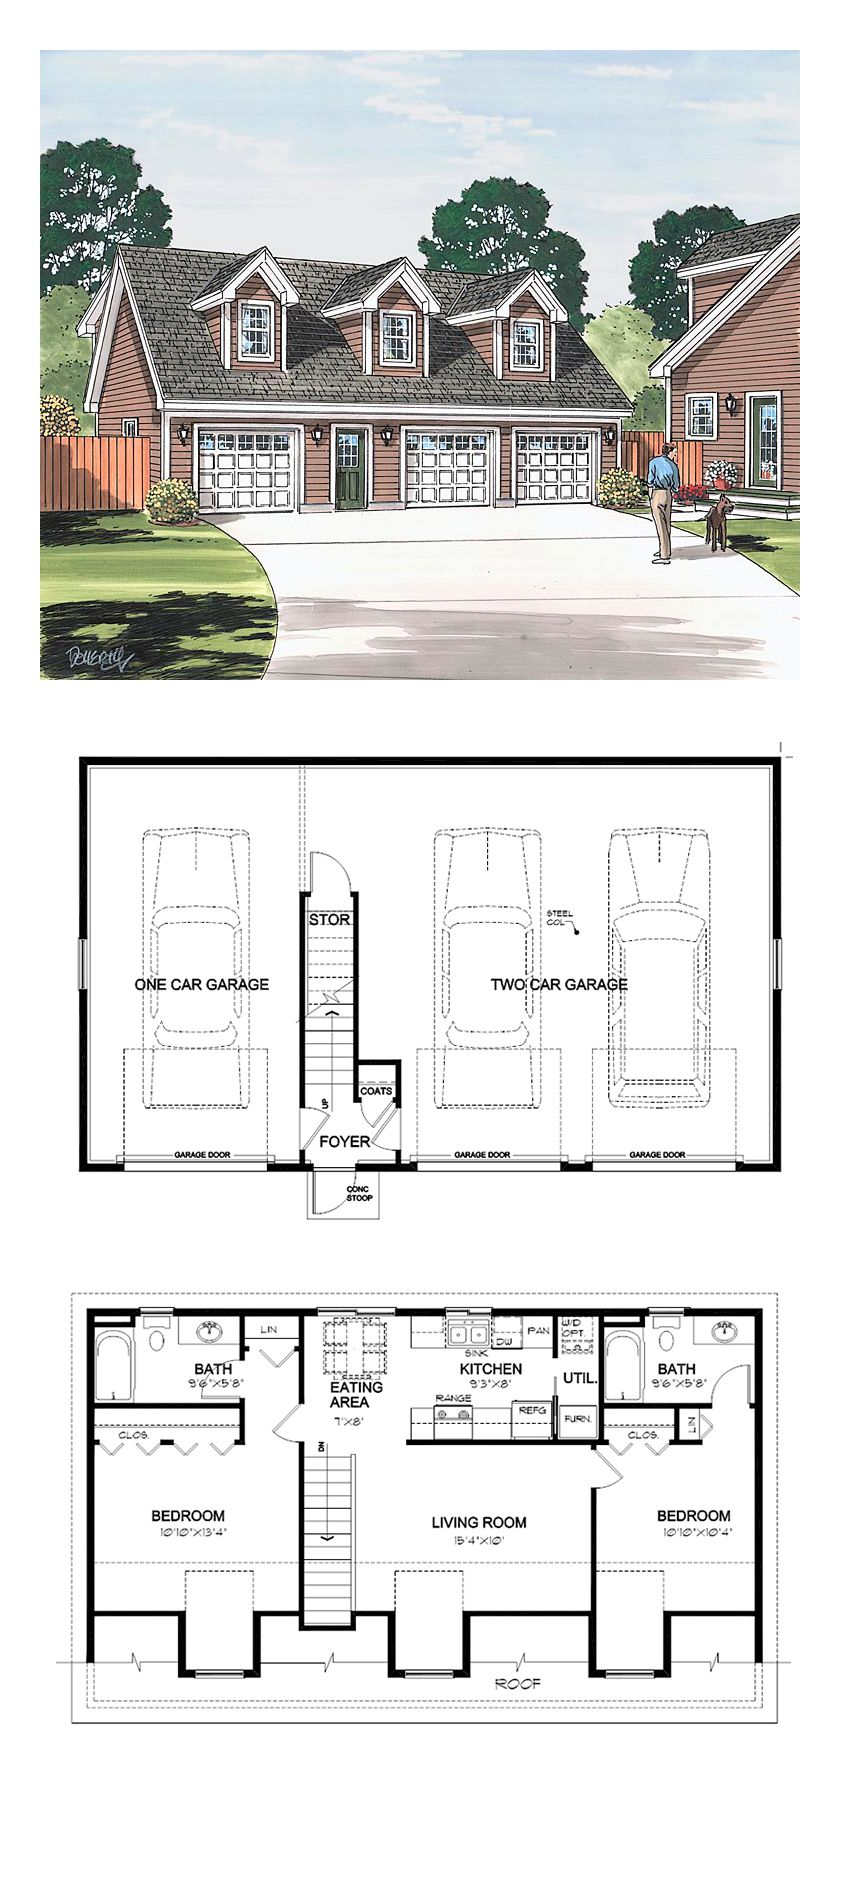 Garage apartment plan 30032 total living area 887 sq for Garage apartment building plans